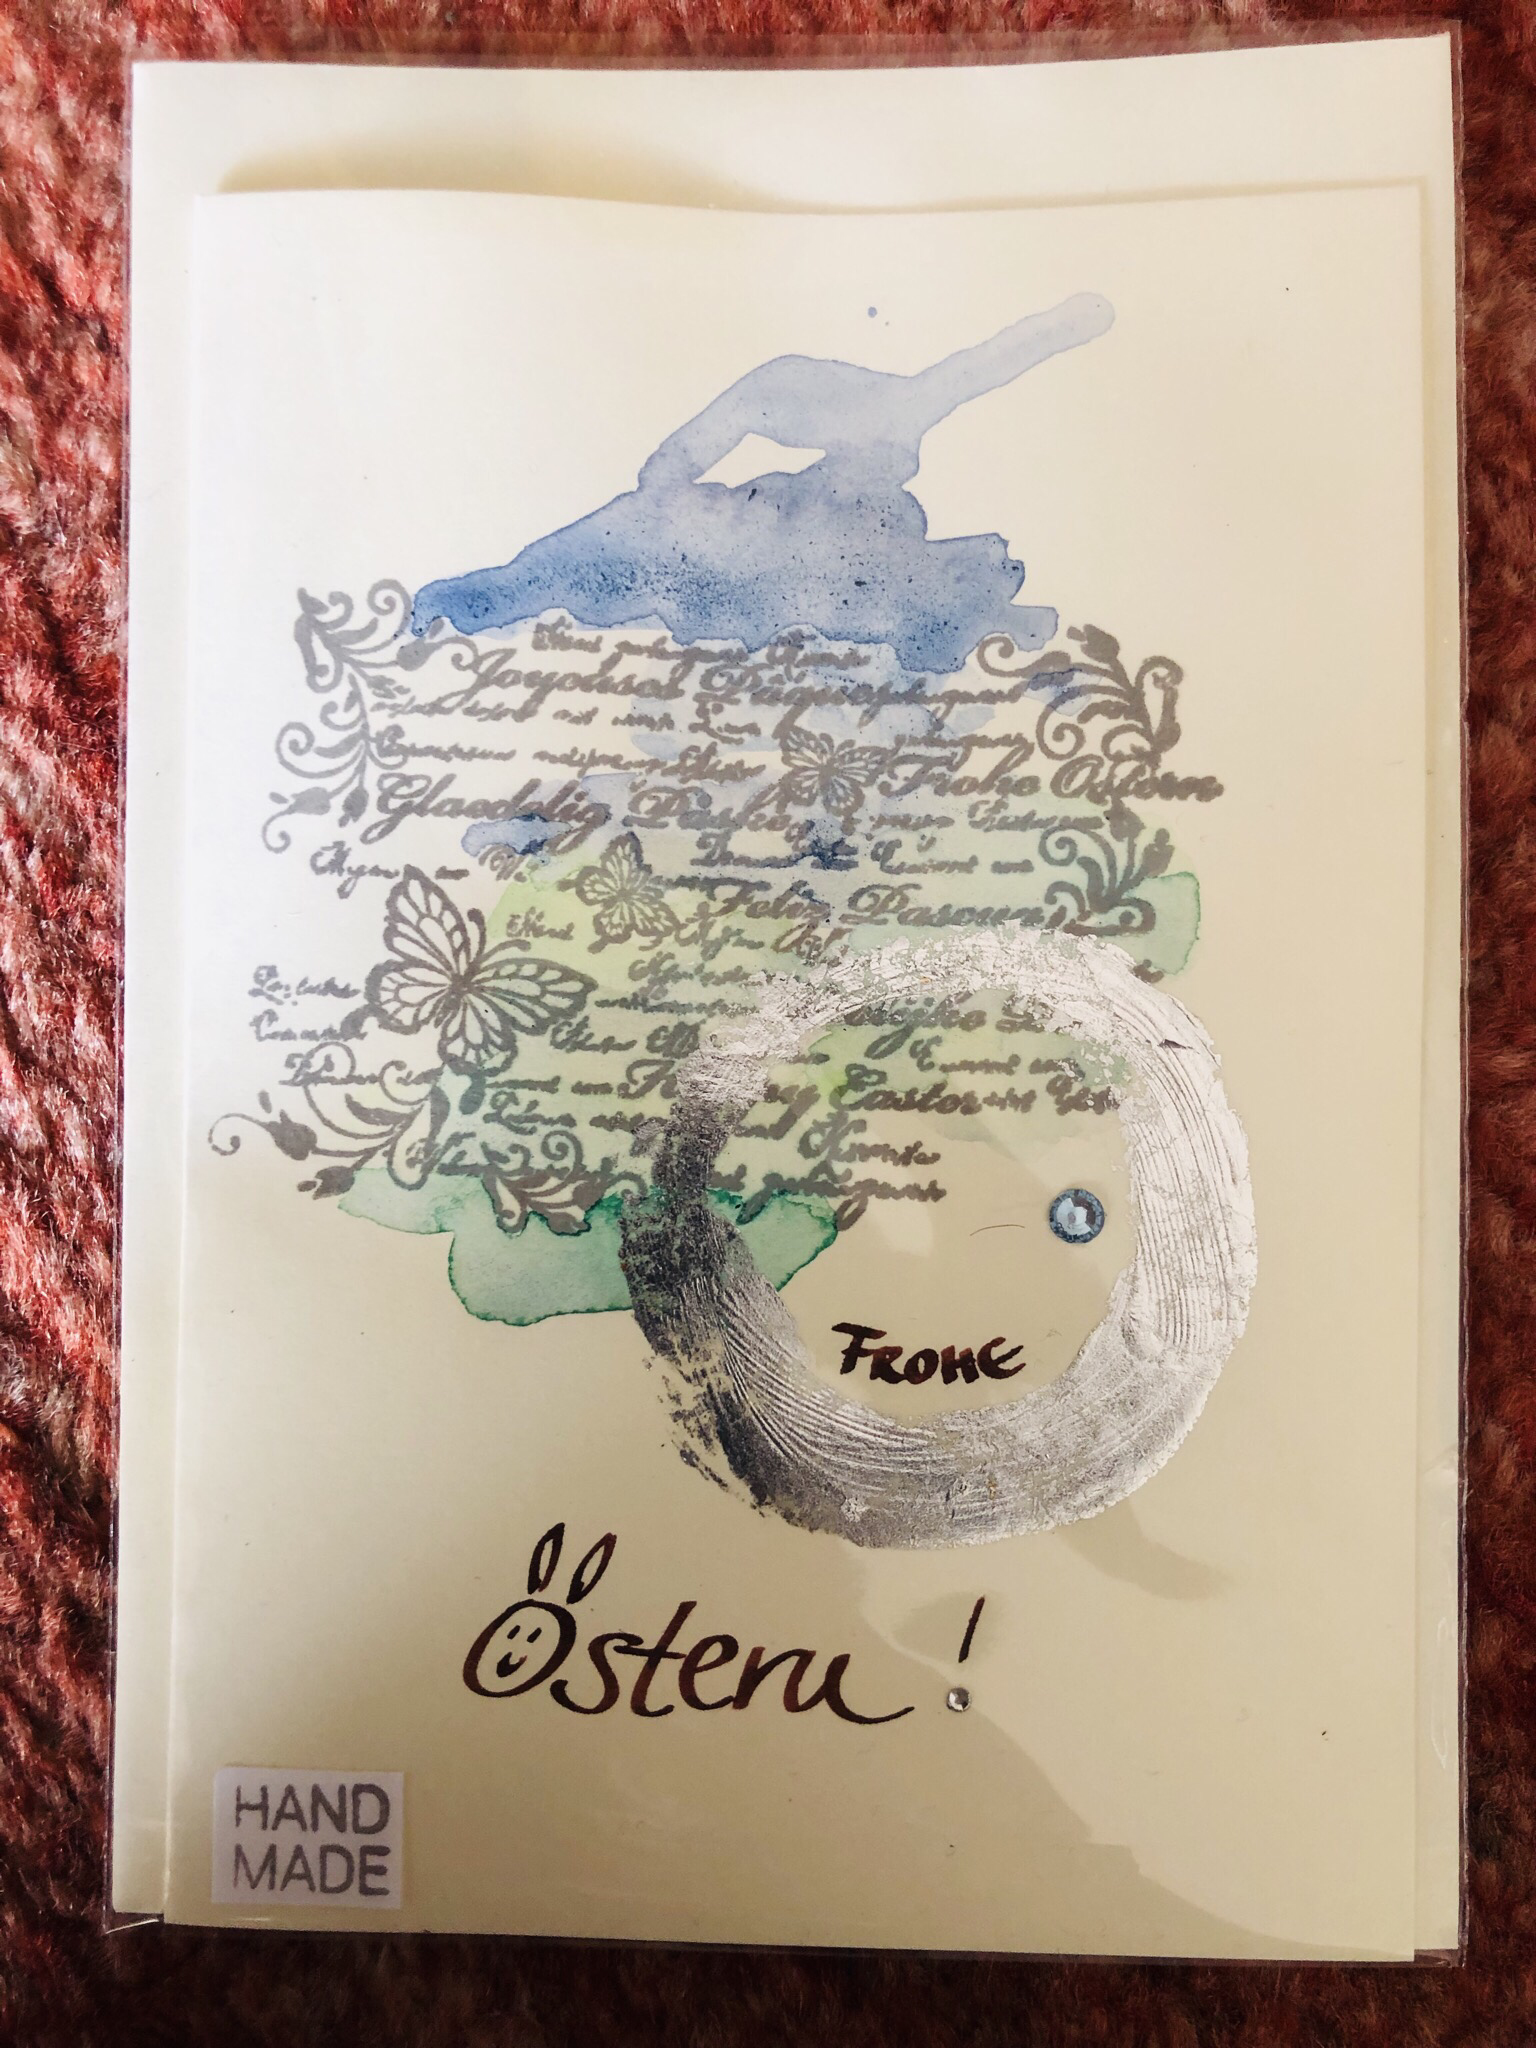 "Karte ""handmade"" - Ostern Text - Frohe Ostern! 25075"